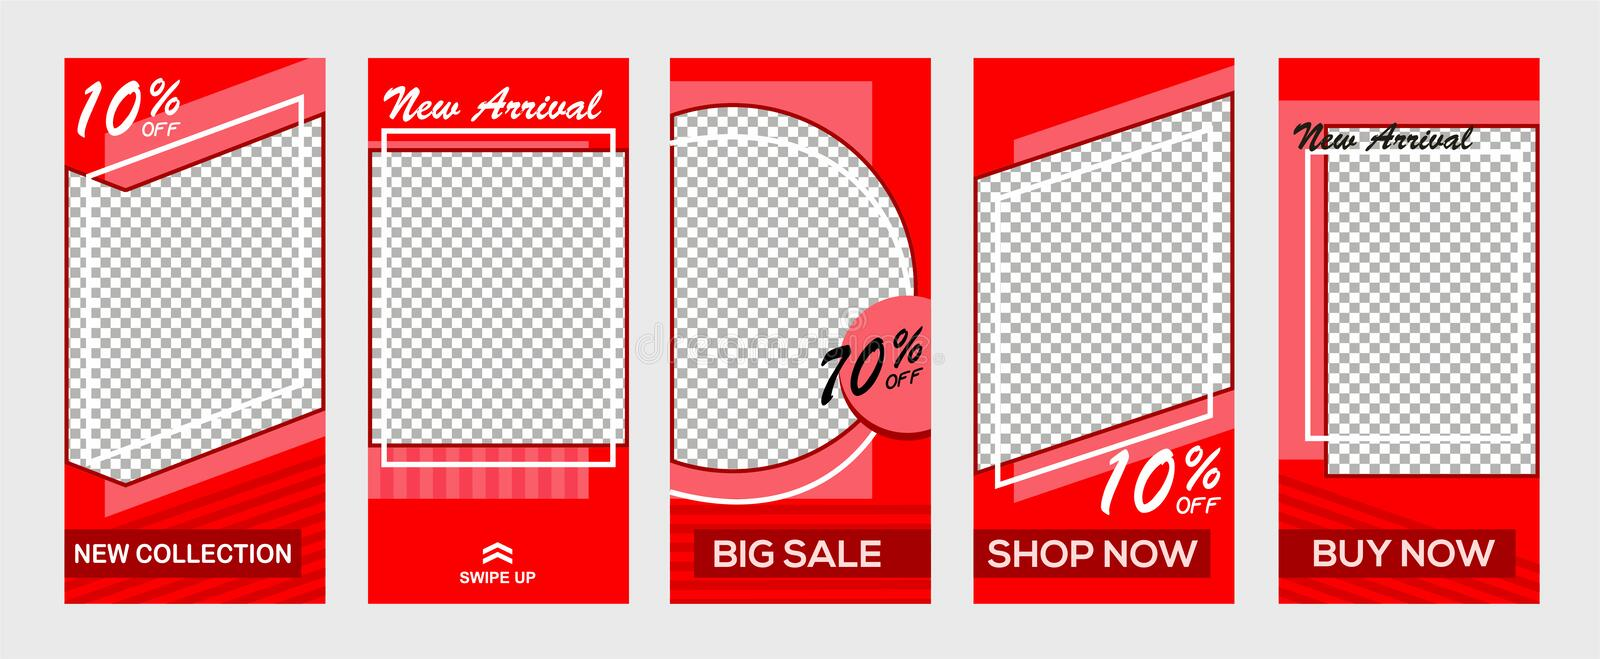 Set of Instagram stories sale banner background, Instagram template photo, can be use for, landinga page, website, mobile app, pos vector illustration